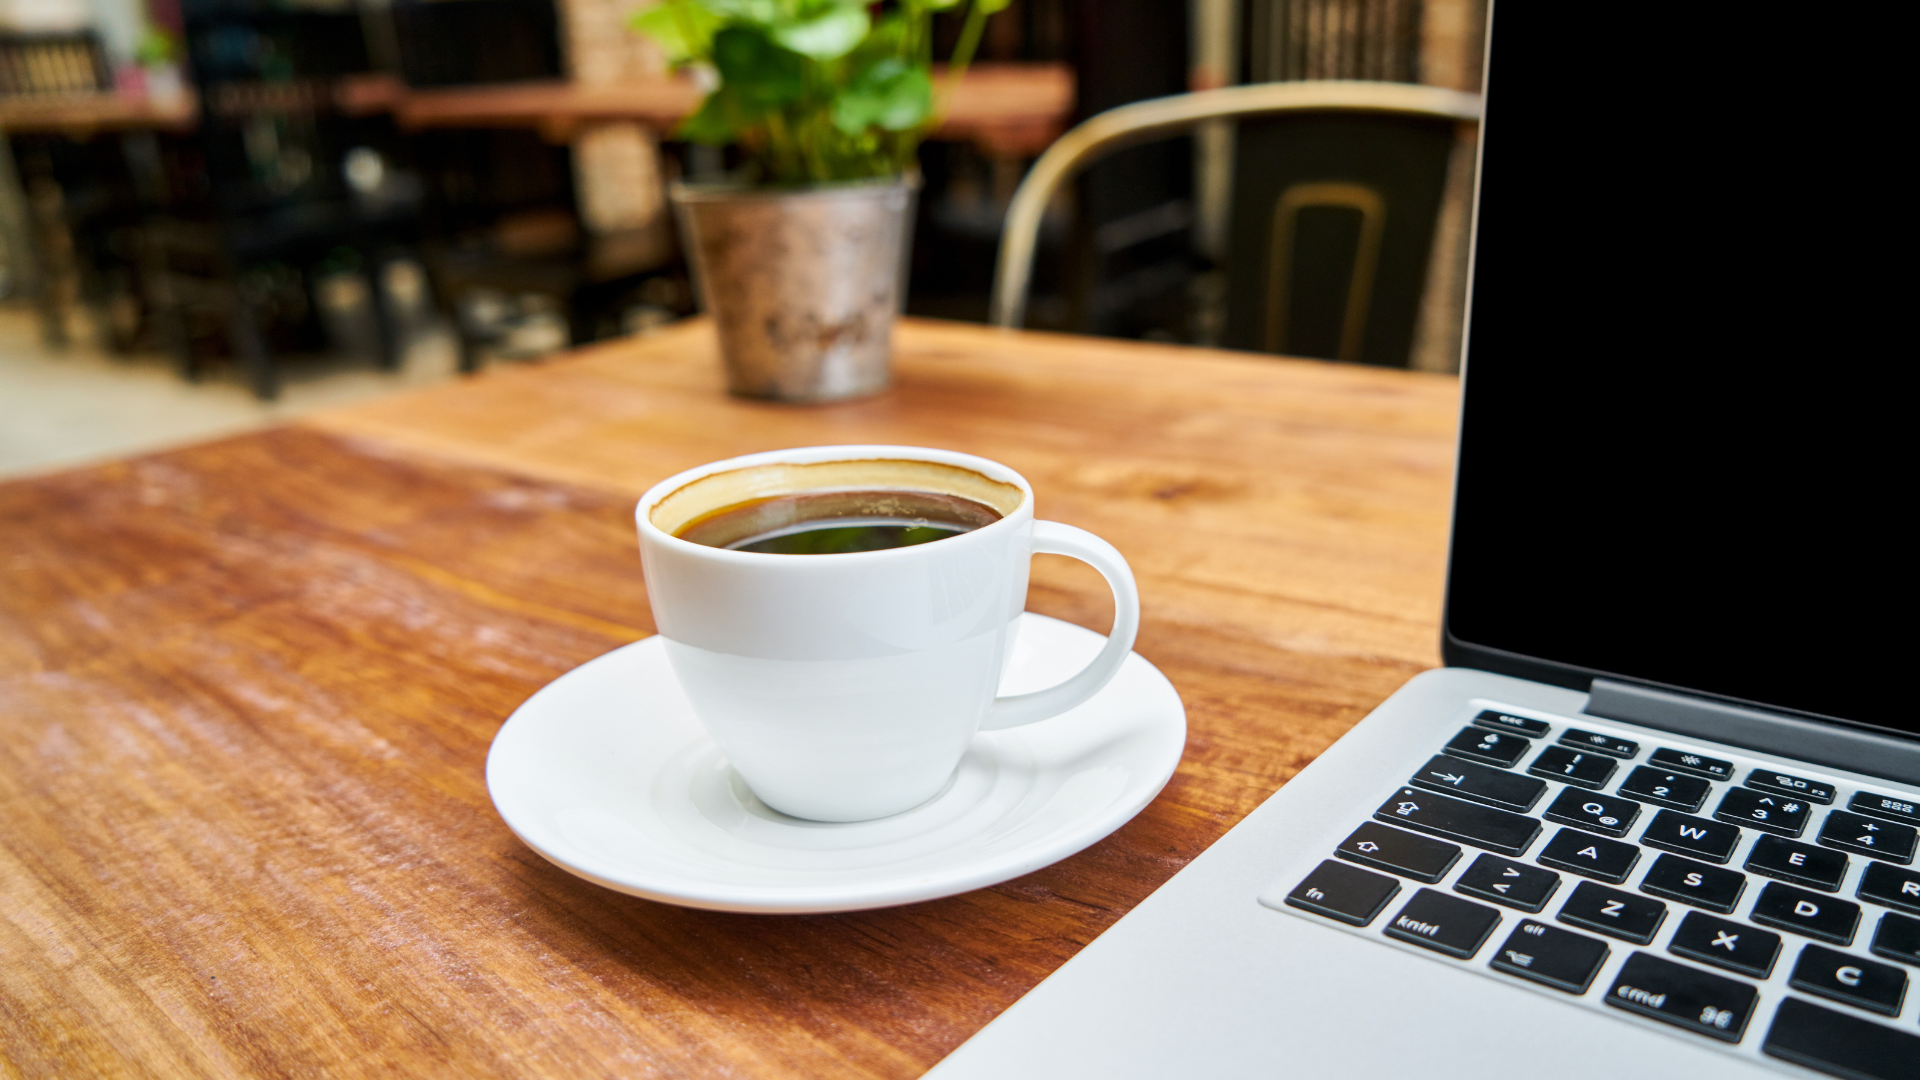 coffee-and-laptop-on-a-wooden-table